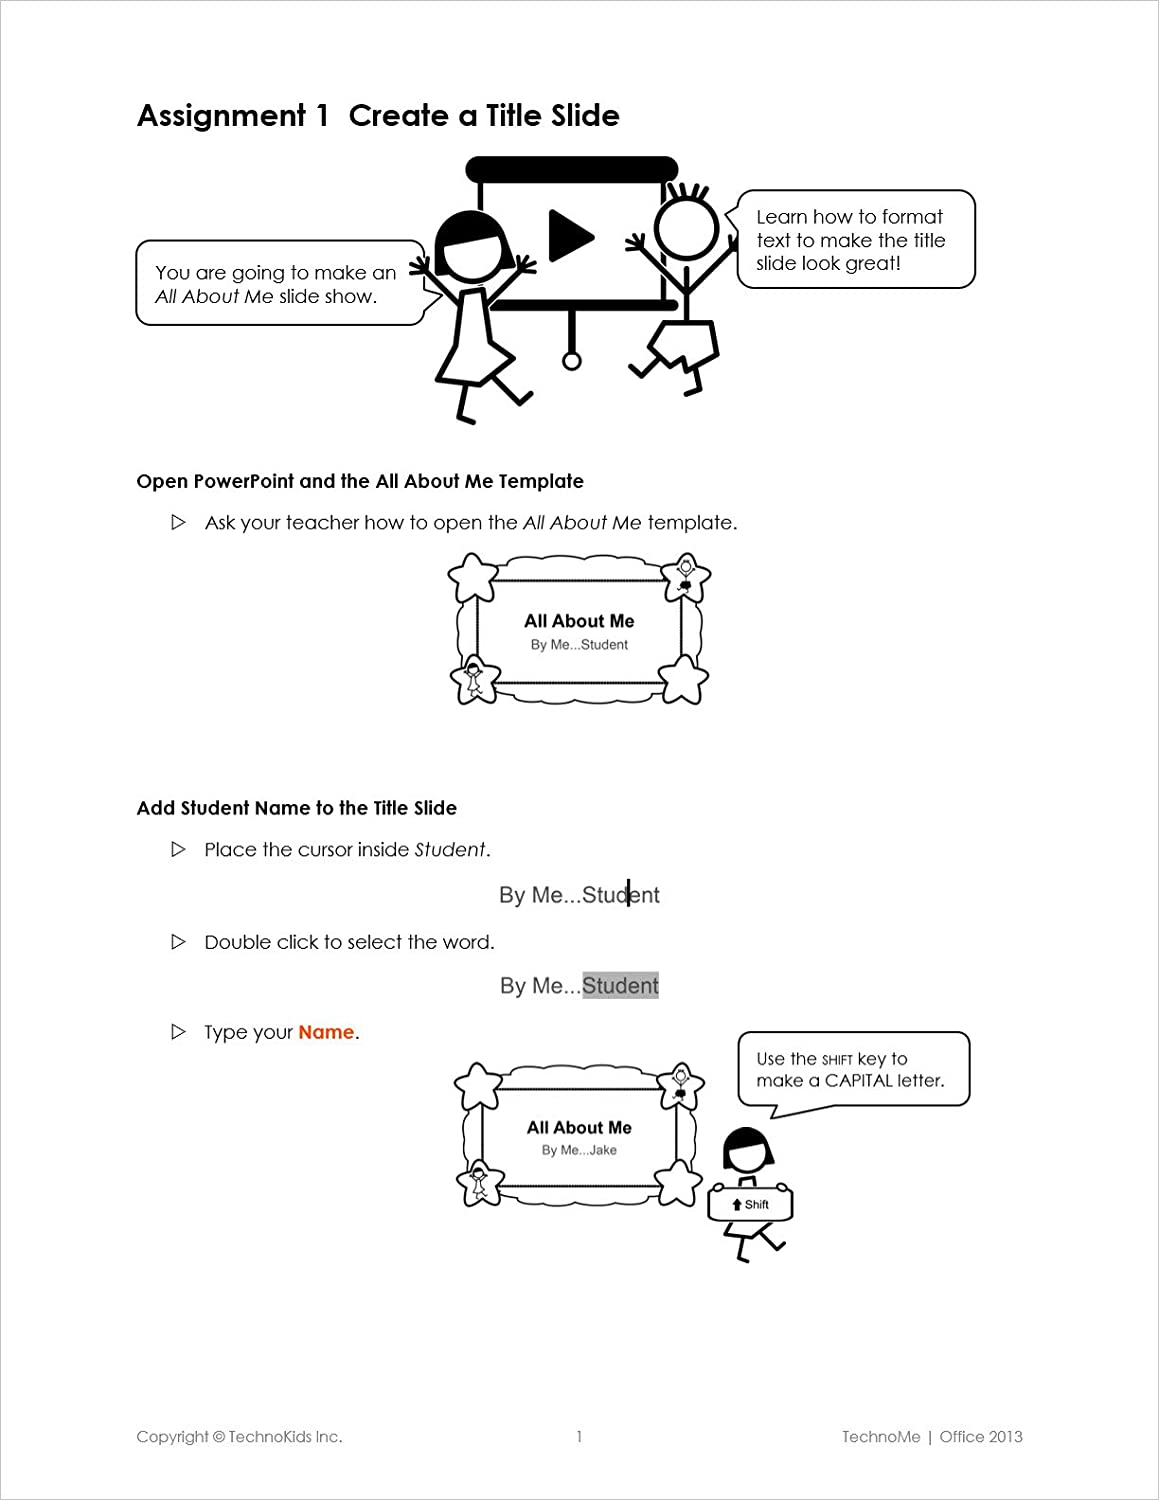 Amazon technome all about me activities curriculum unit for amazon technome all about me activities curriculum unit for grades 1 3 includes google slides or powerpoint template office 2013 office toneelgroepblik Choice Image